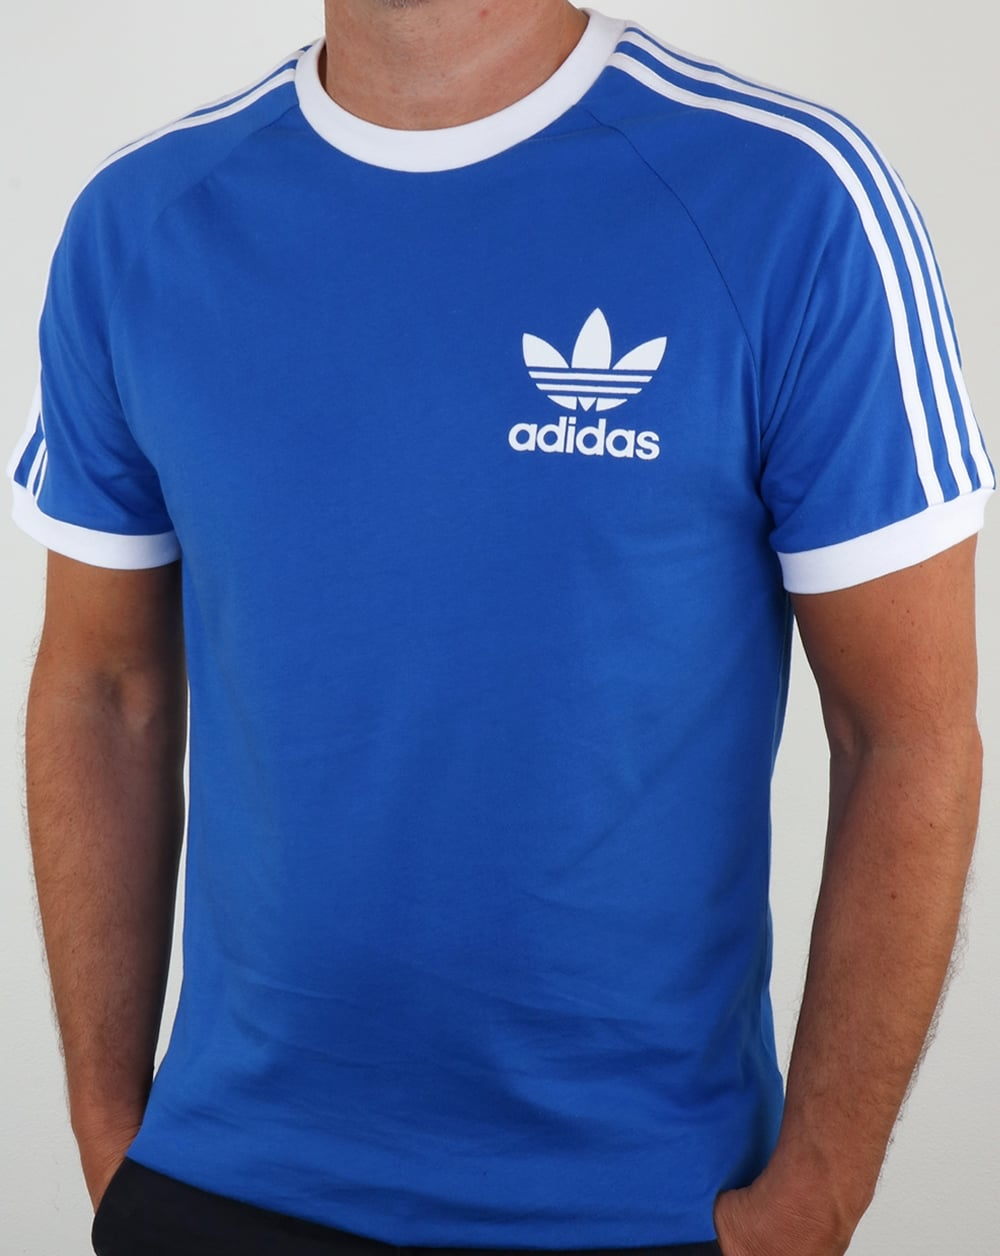 002153fff039 Adidas Originals Afa Retro Football T Shirt Blue - BCD Tofu House